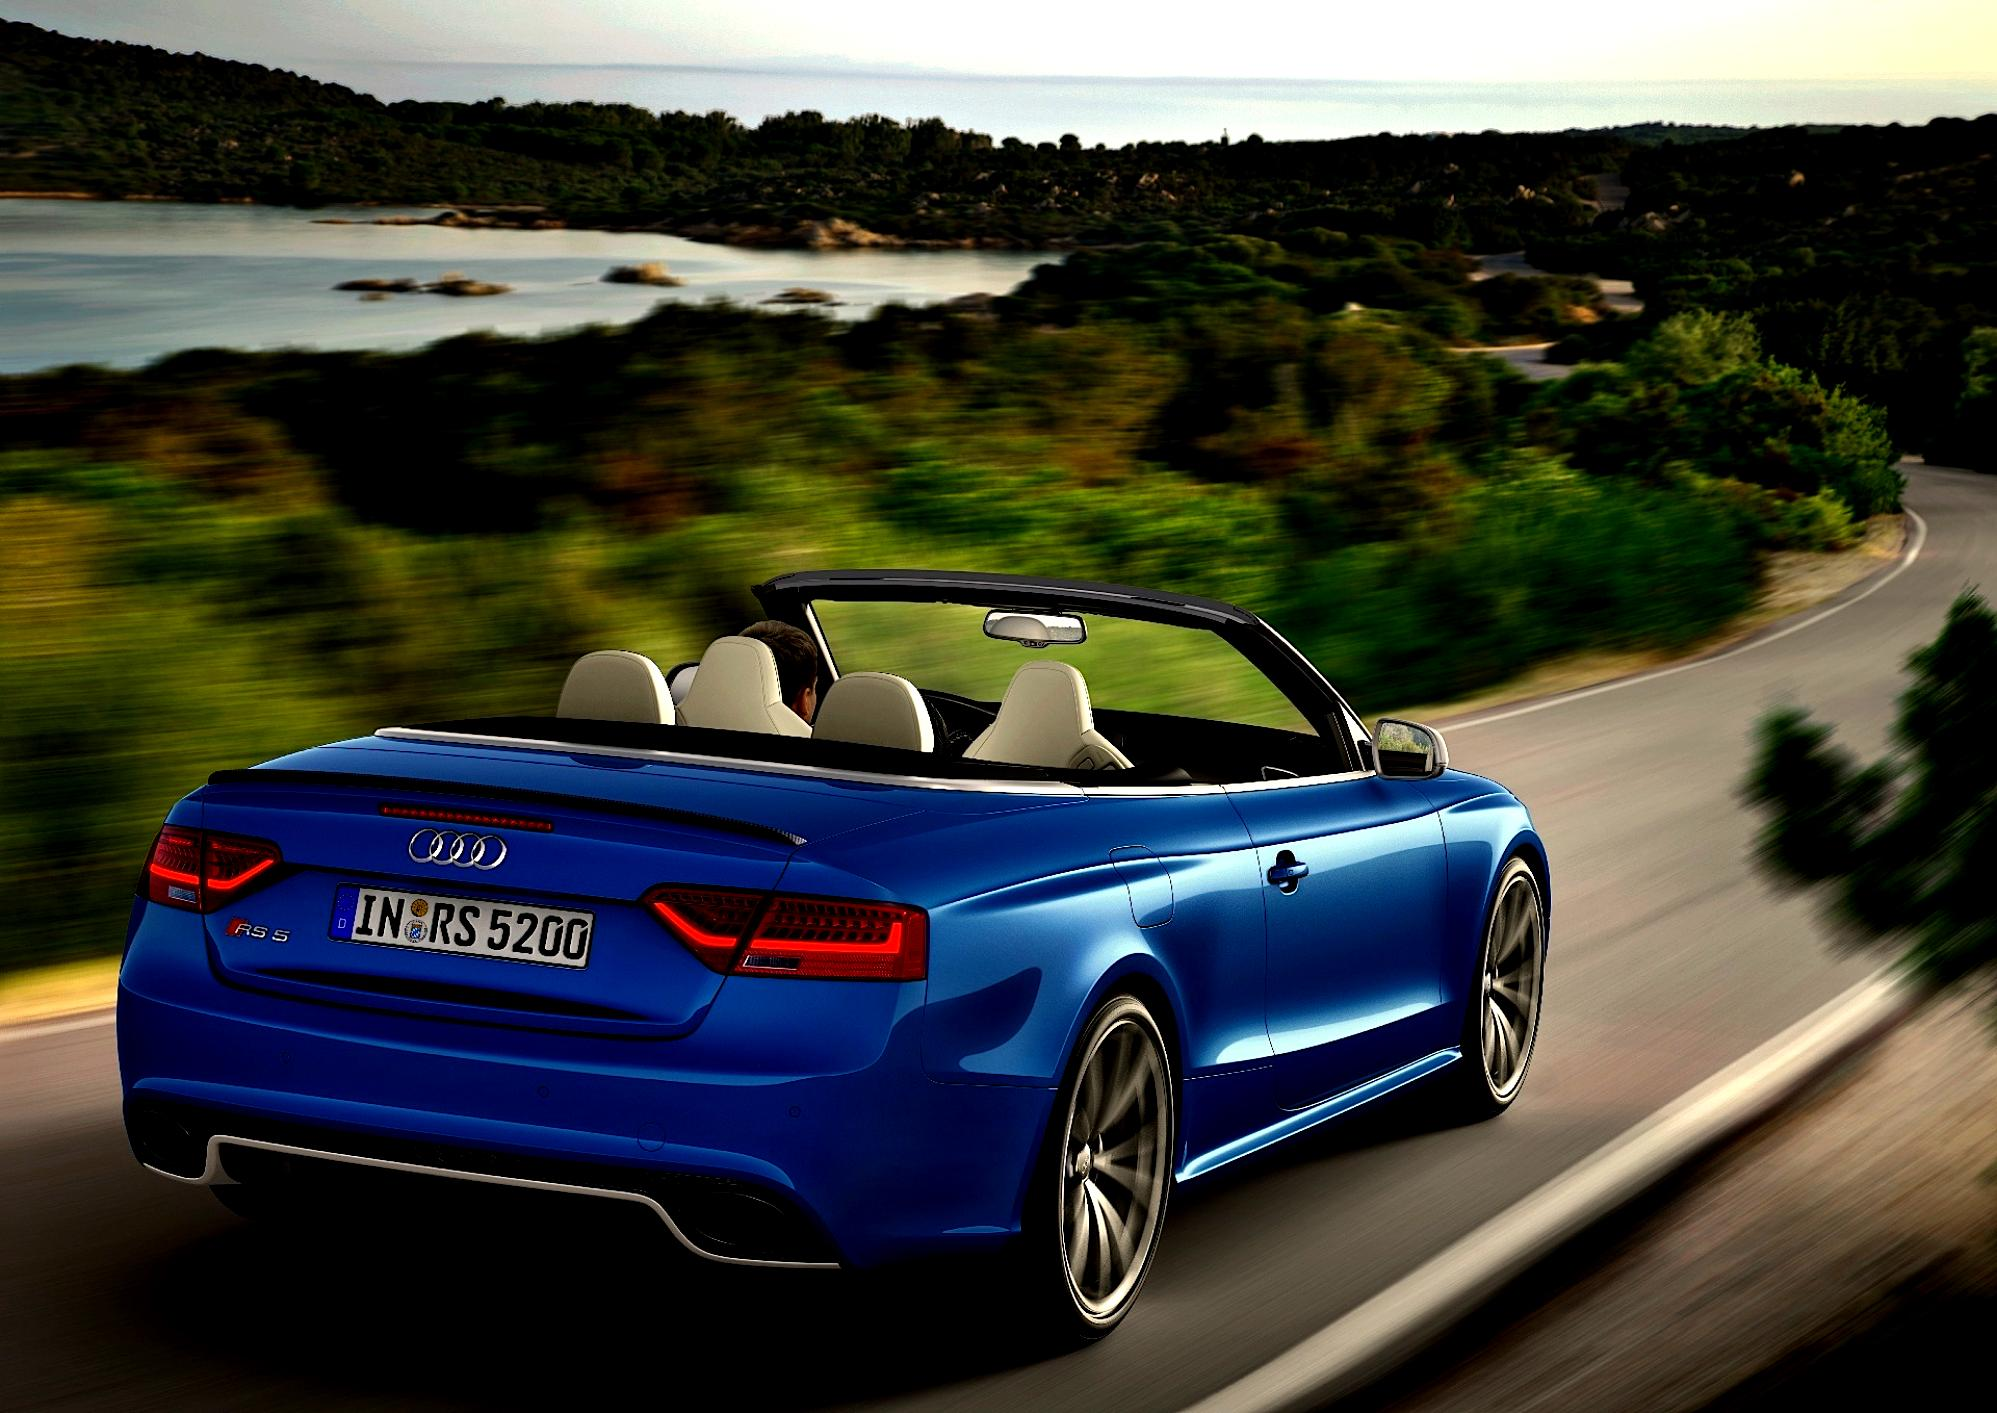 Audi RS5 Cabriolet 2013 #40